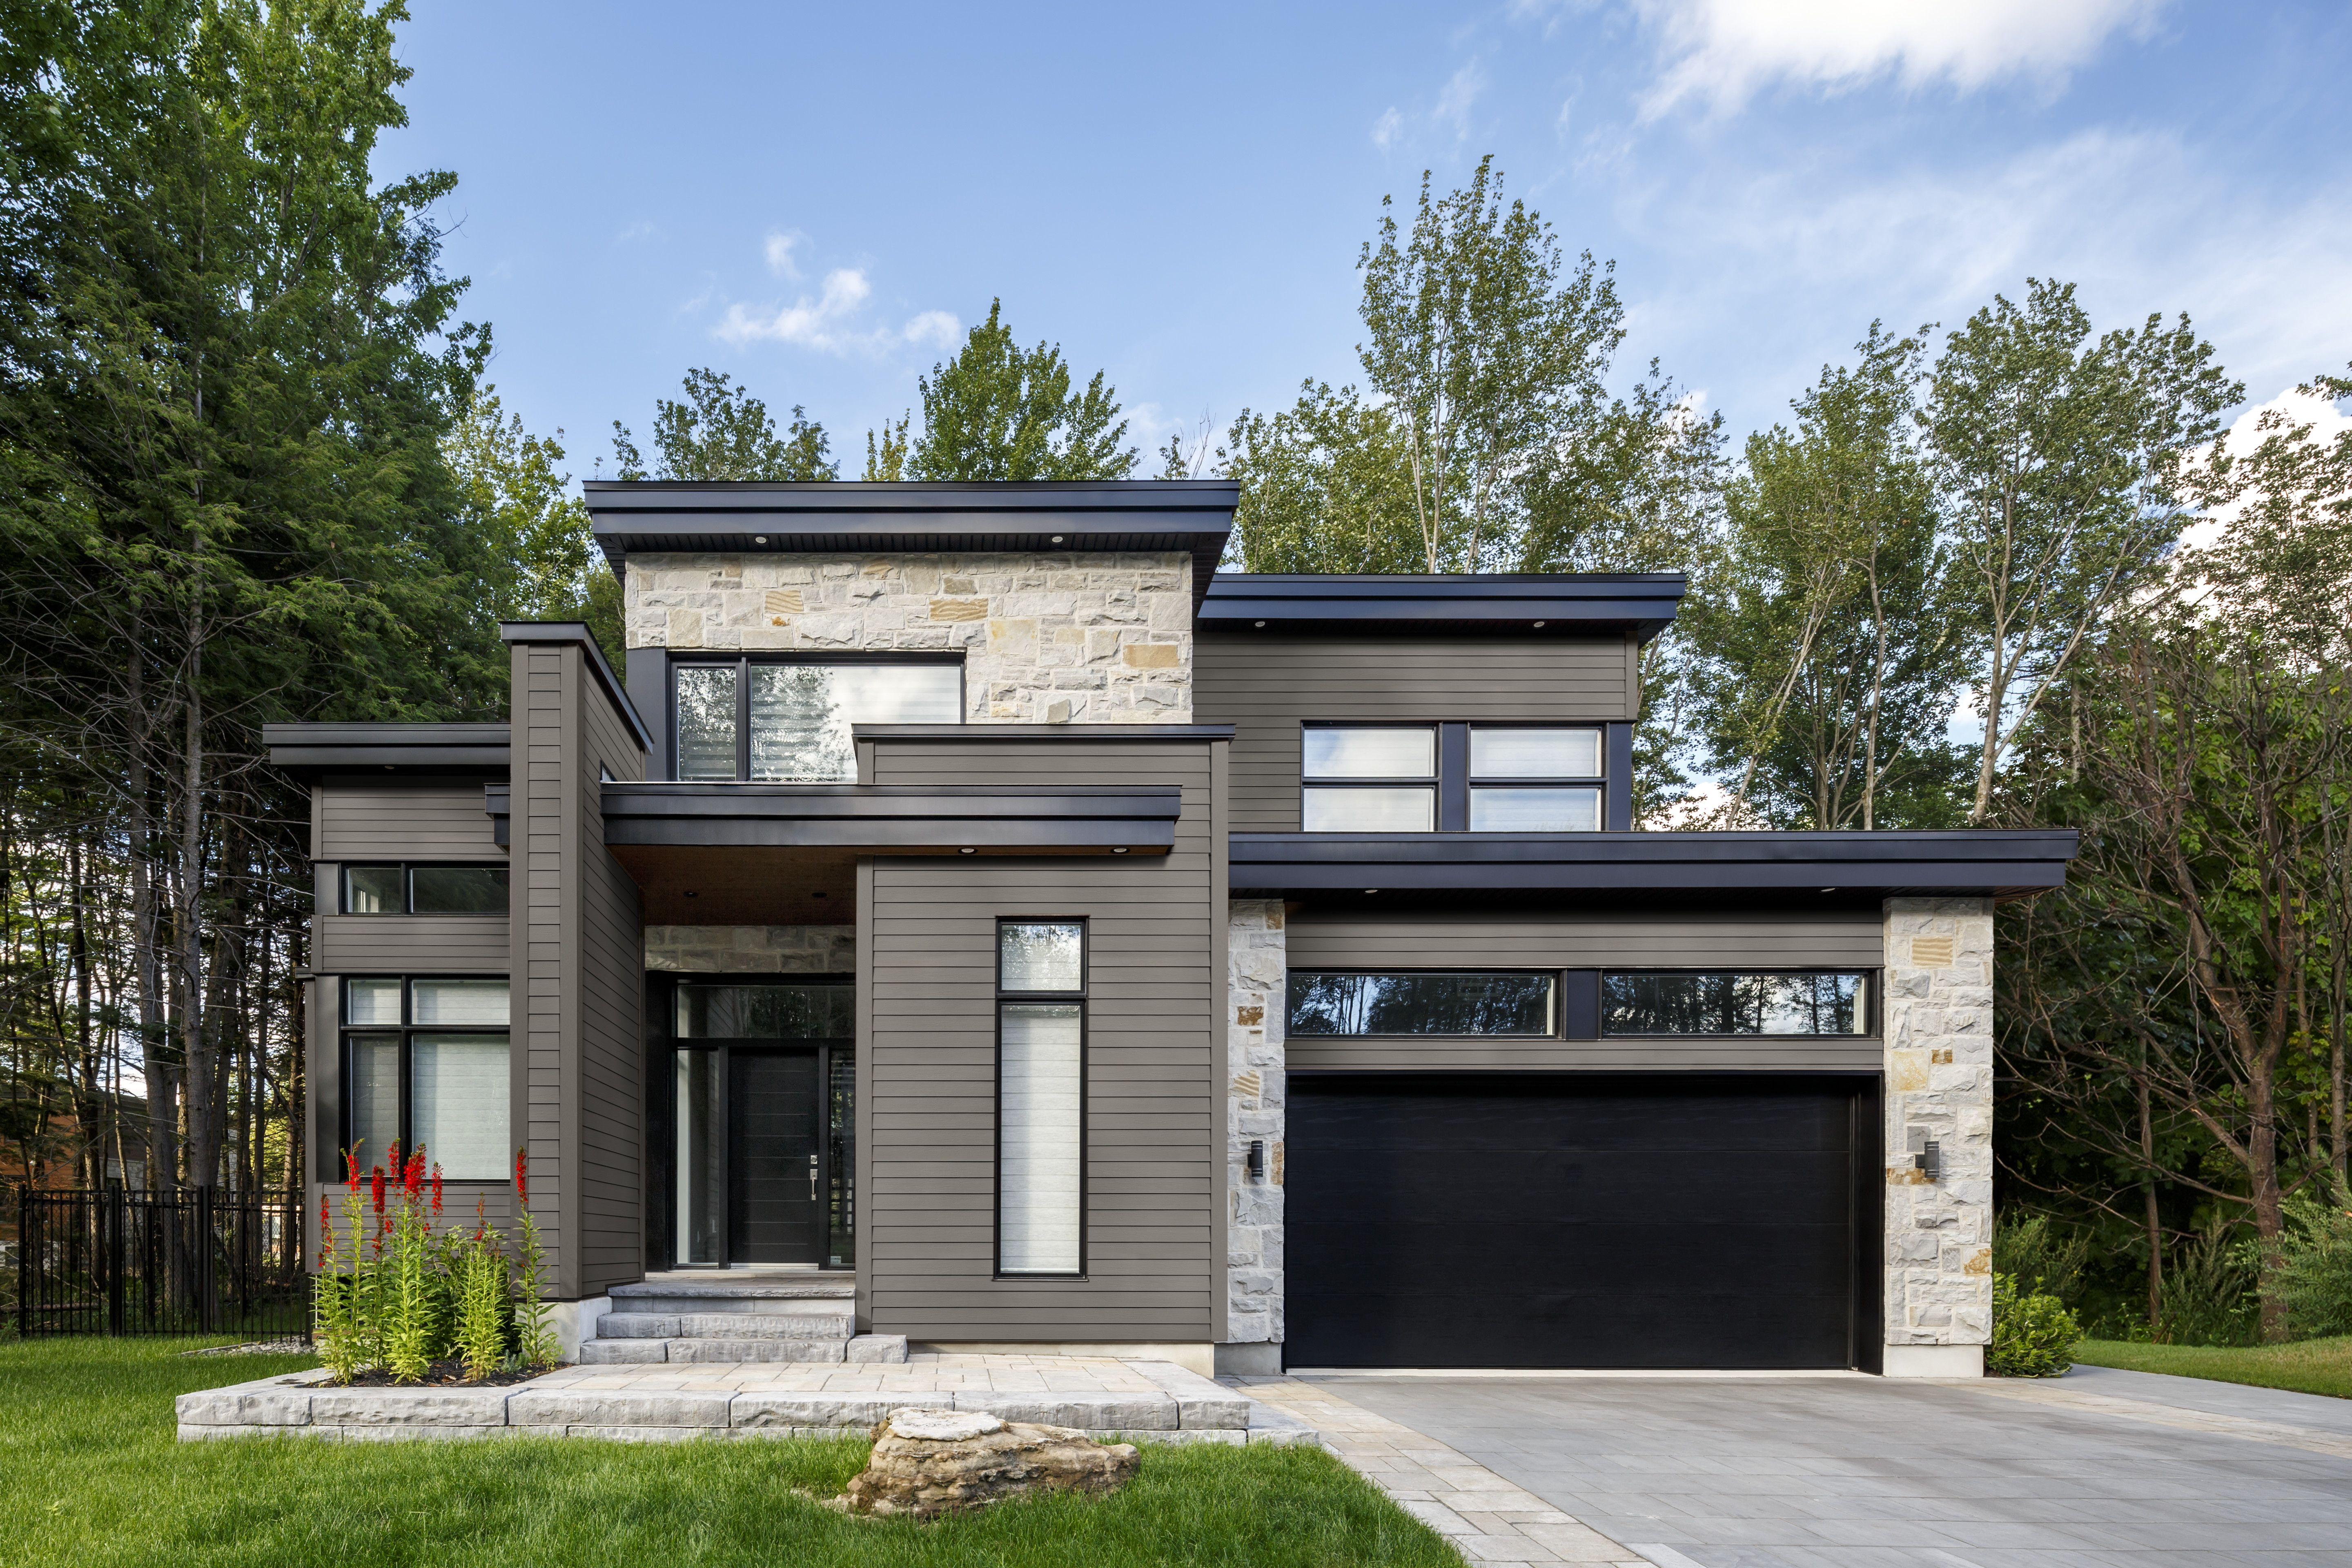 Fibrociment james hardie home in 2019 james hardie - Best exterior paint for hardiplank siding ...